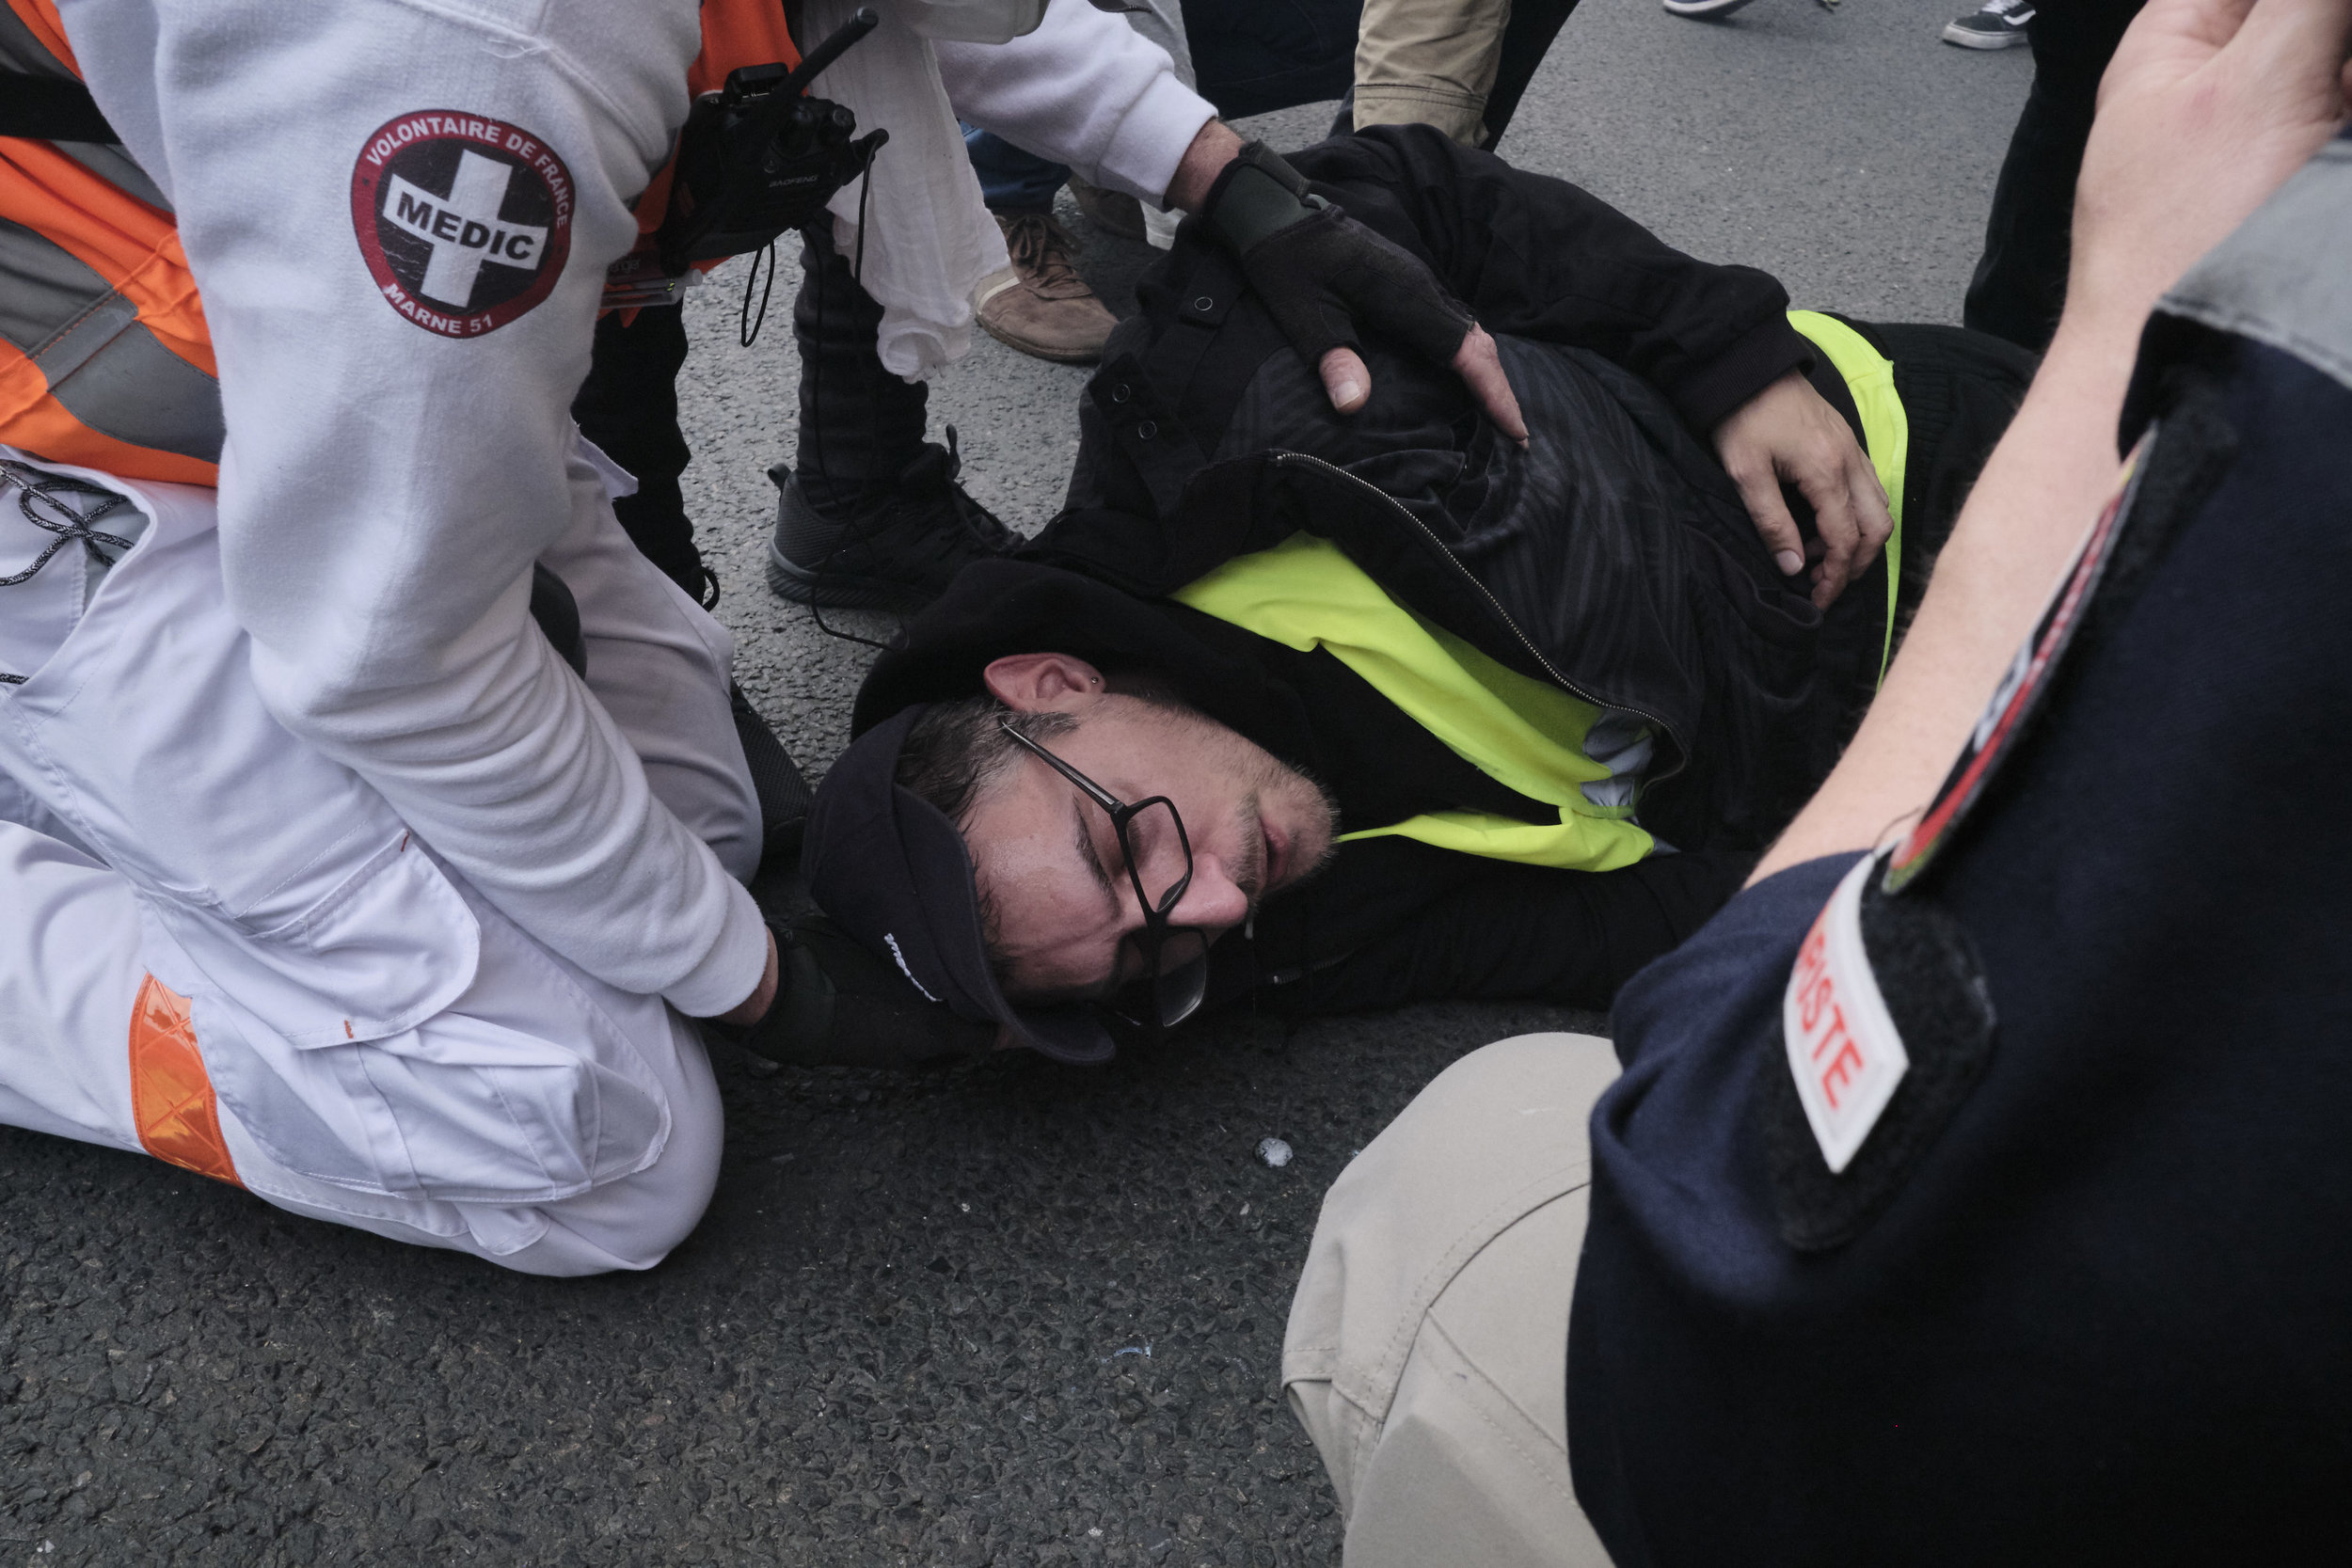 Street Medics helping an injured protest participant after a confrontation with the police.